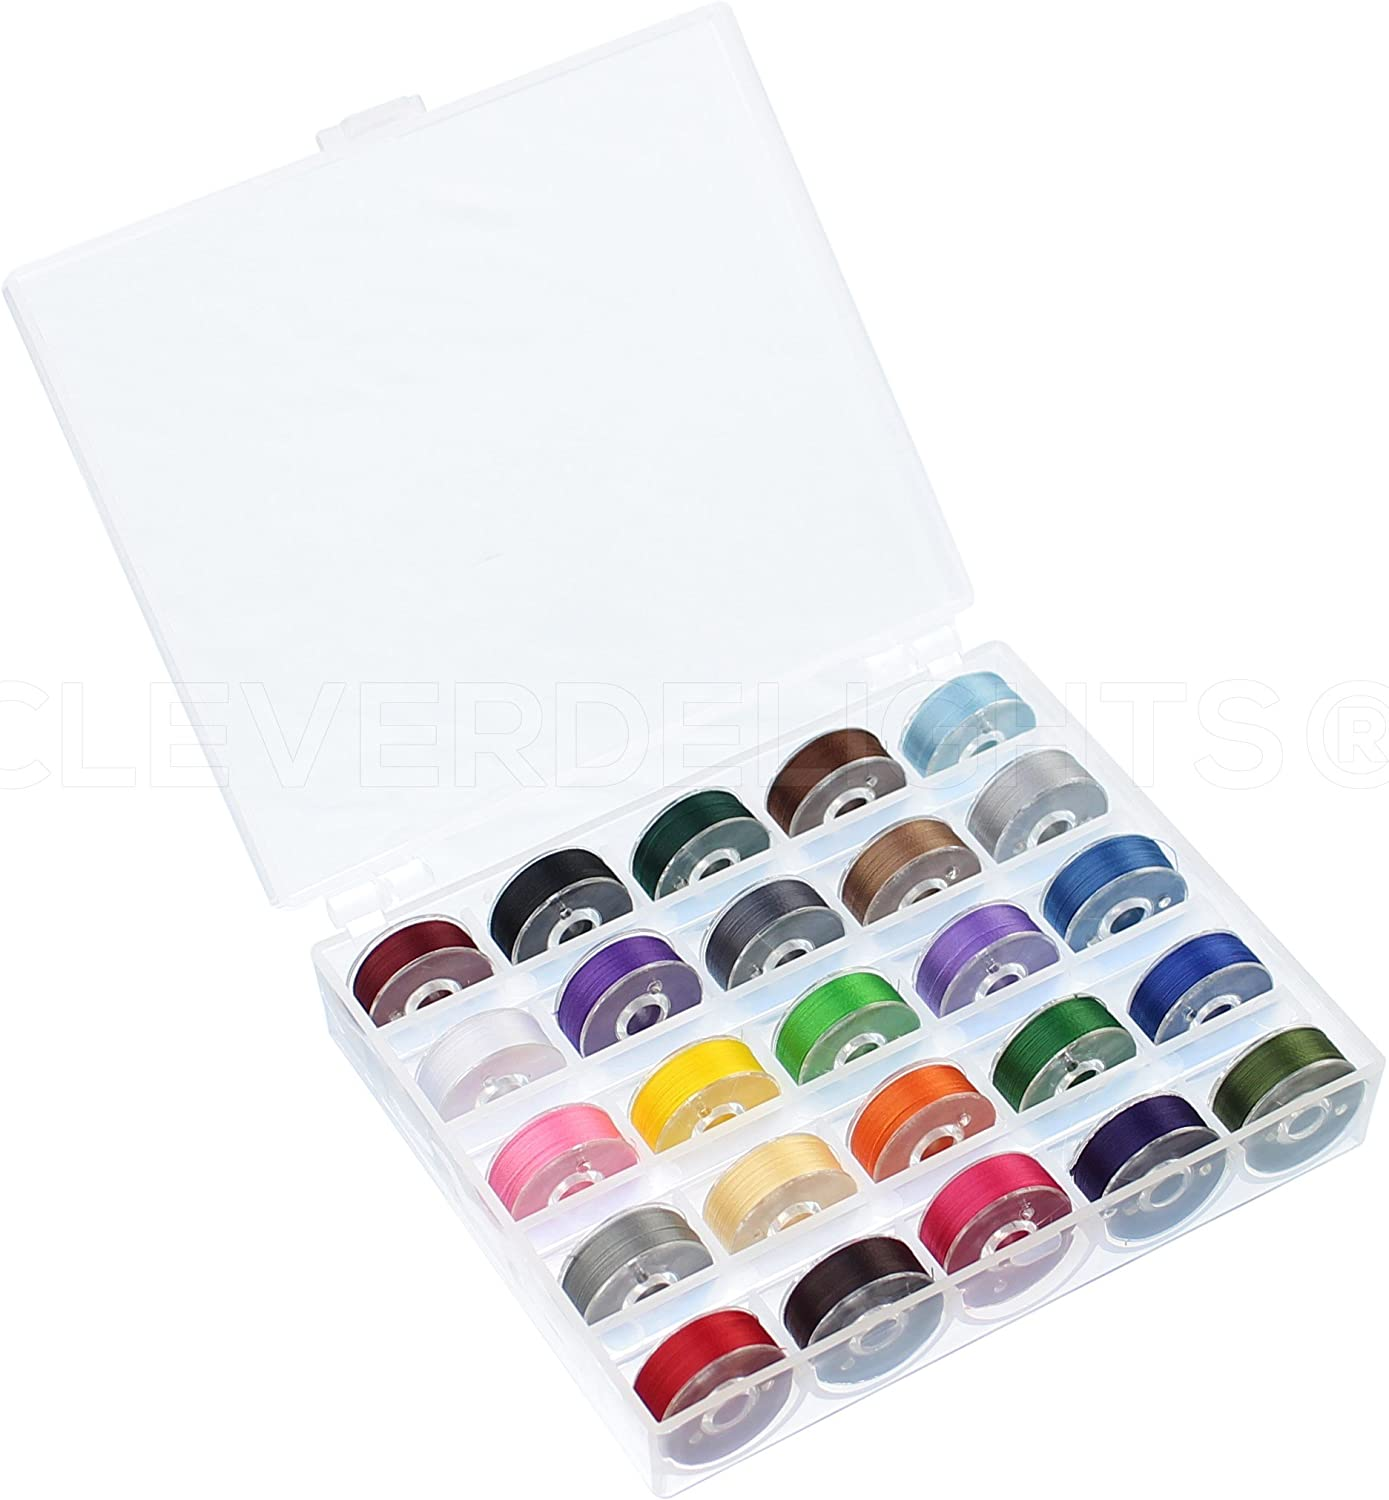 Storage Case 60wt Size A Bobbins Embroidery 25 Color Prewound Bobbins Set